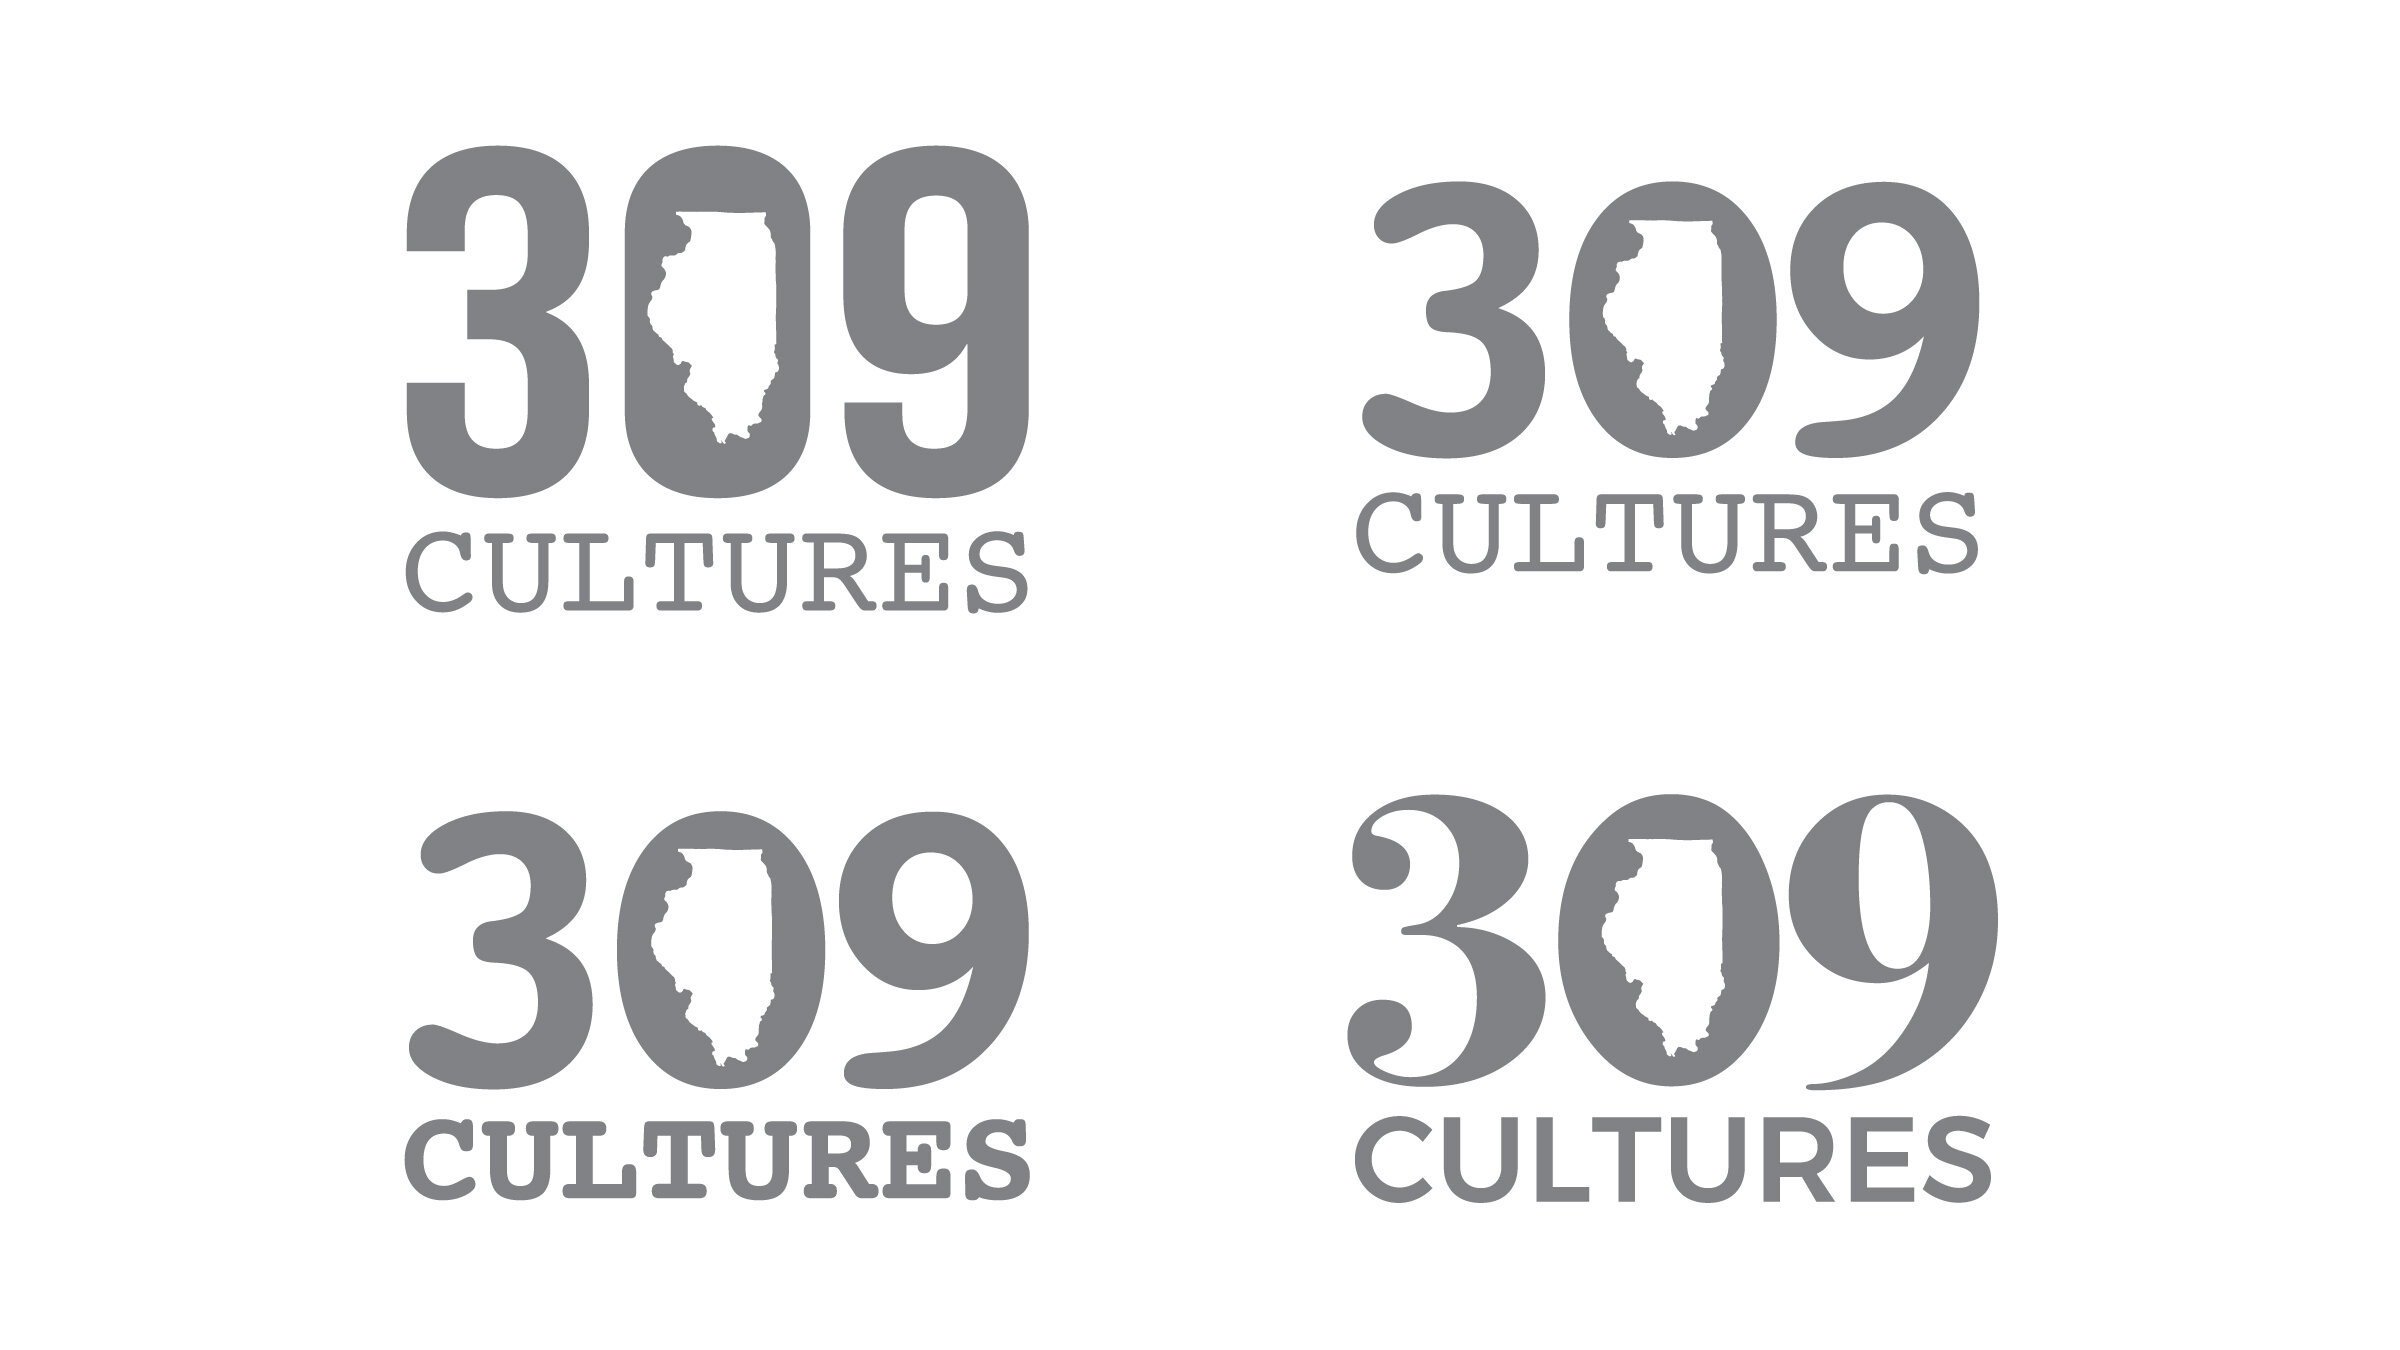 Initial concepts for the 309 Cultures logo